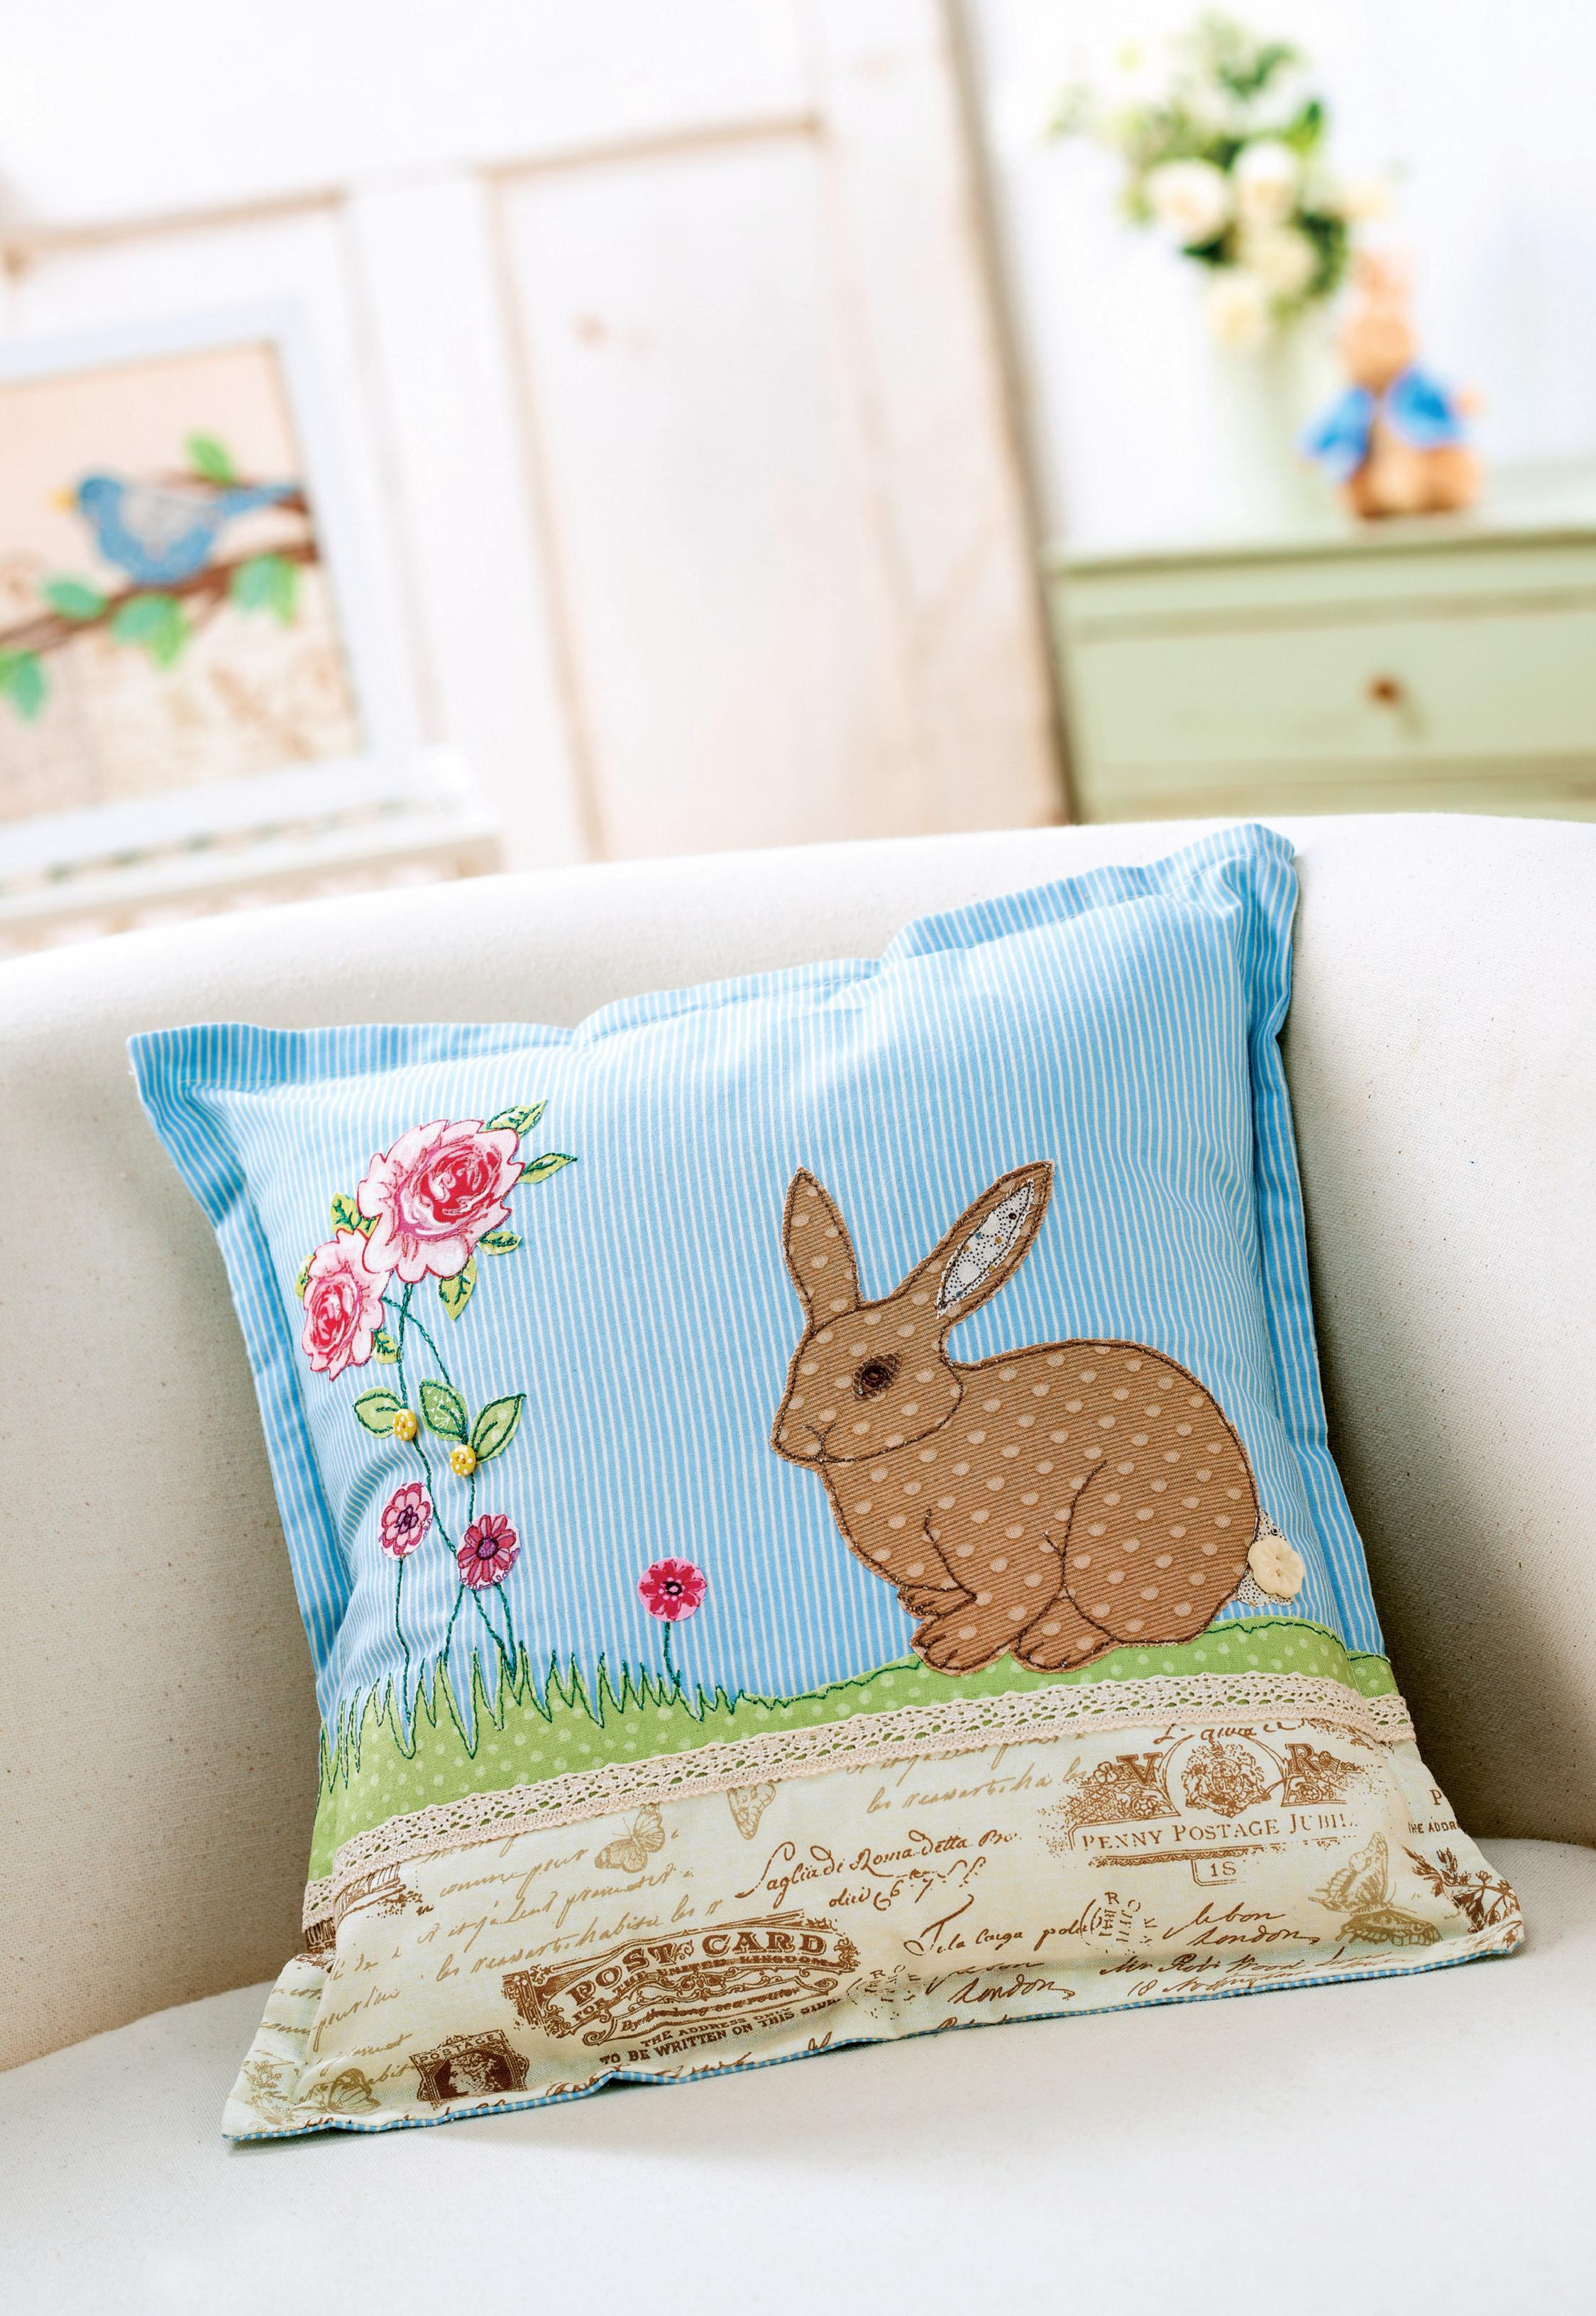 Easter_Applique_Cushion_and_Picture_1 Quilting Halloween Newsletter Templates Free on for school, girl scout, ms publisher, preschool monthly,